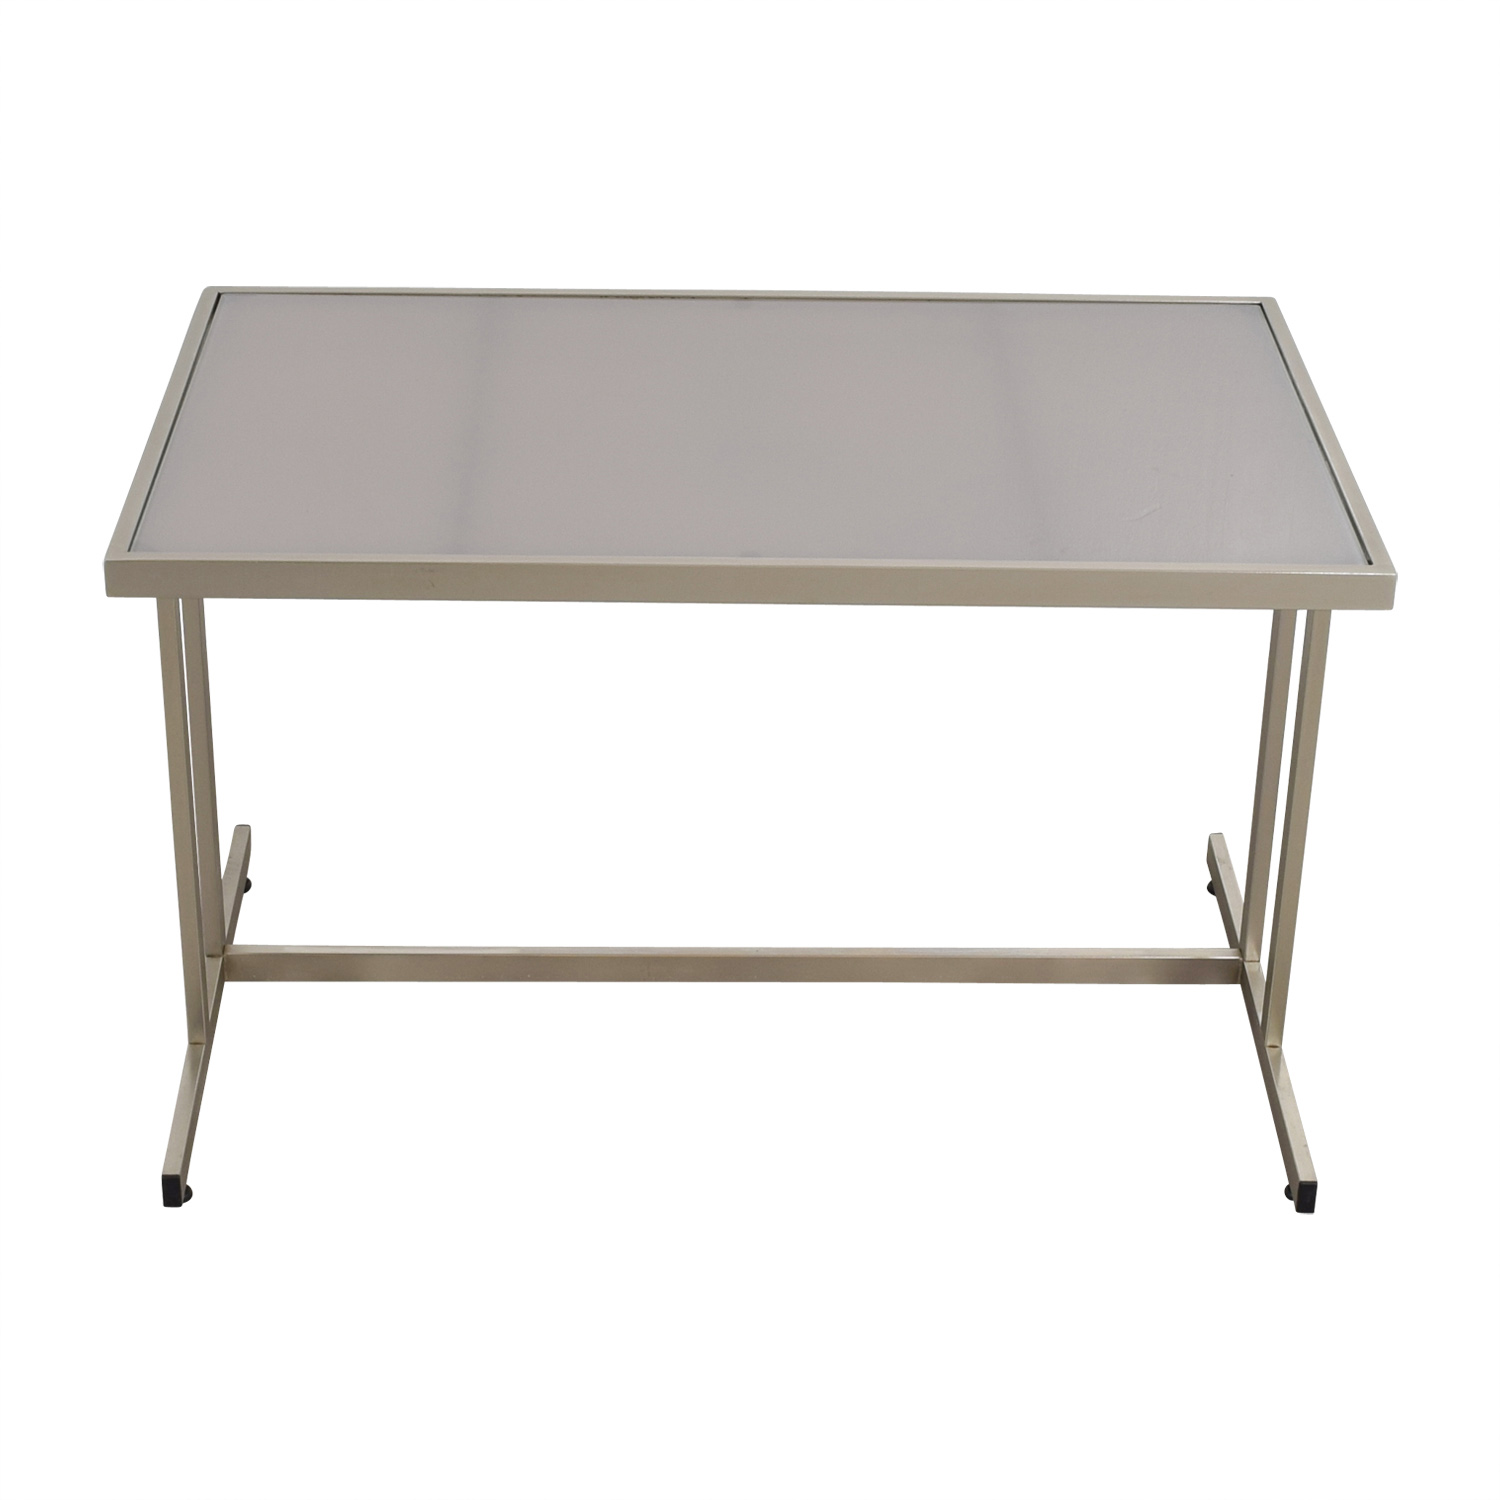 buy CB2 CB2 Brushed Metal and Glass T-Leg Table or Desk online